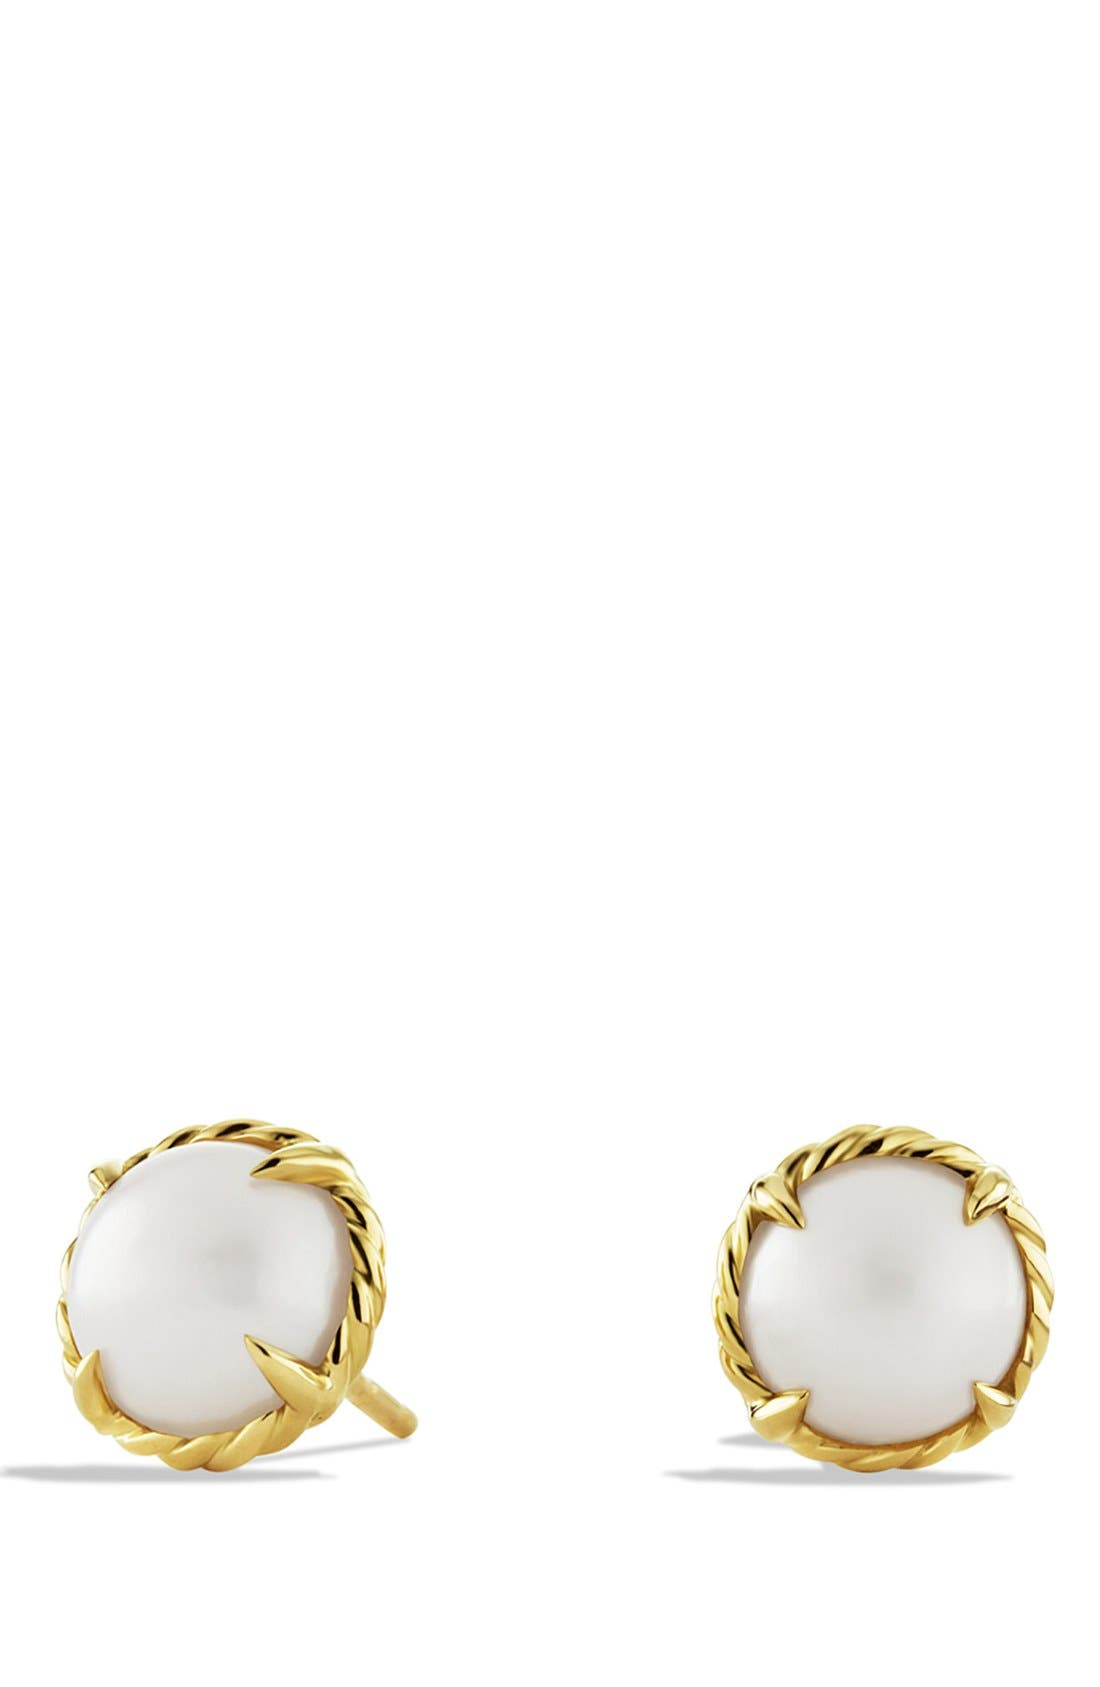 'Châtelaine' Earrings,                         Main,                         color, Pearl